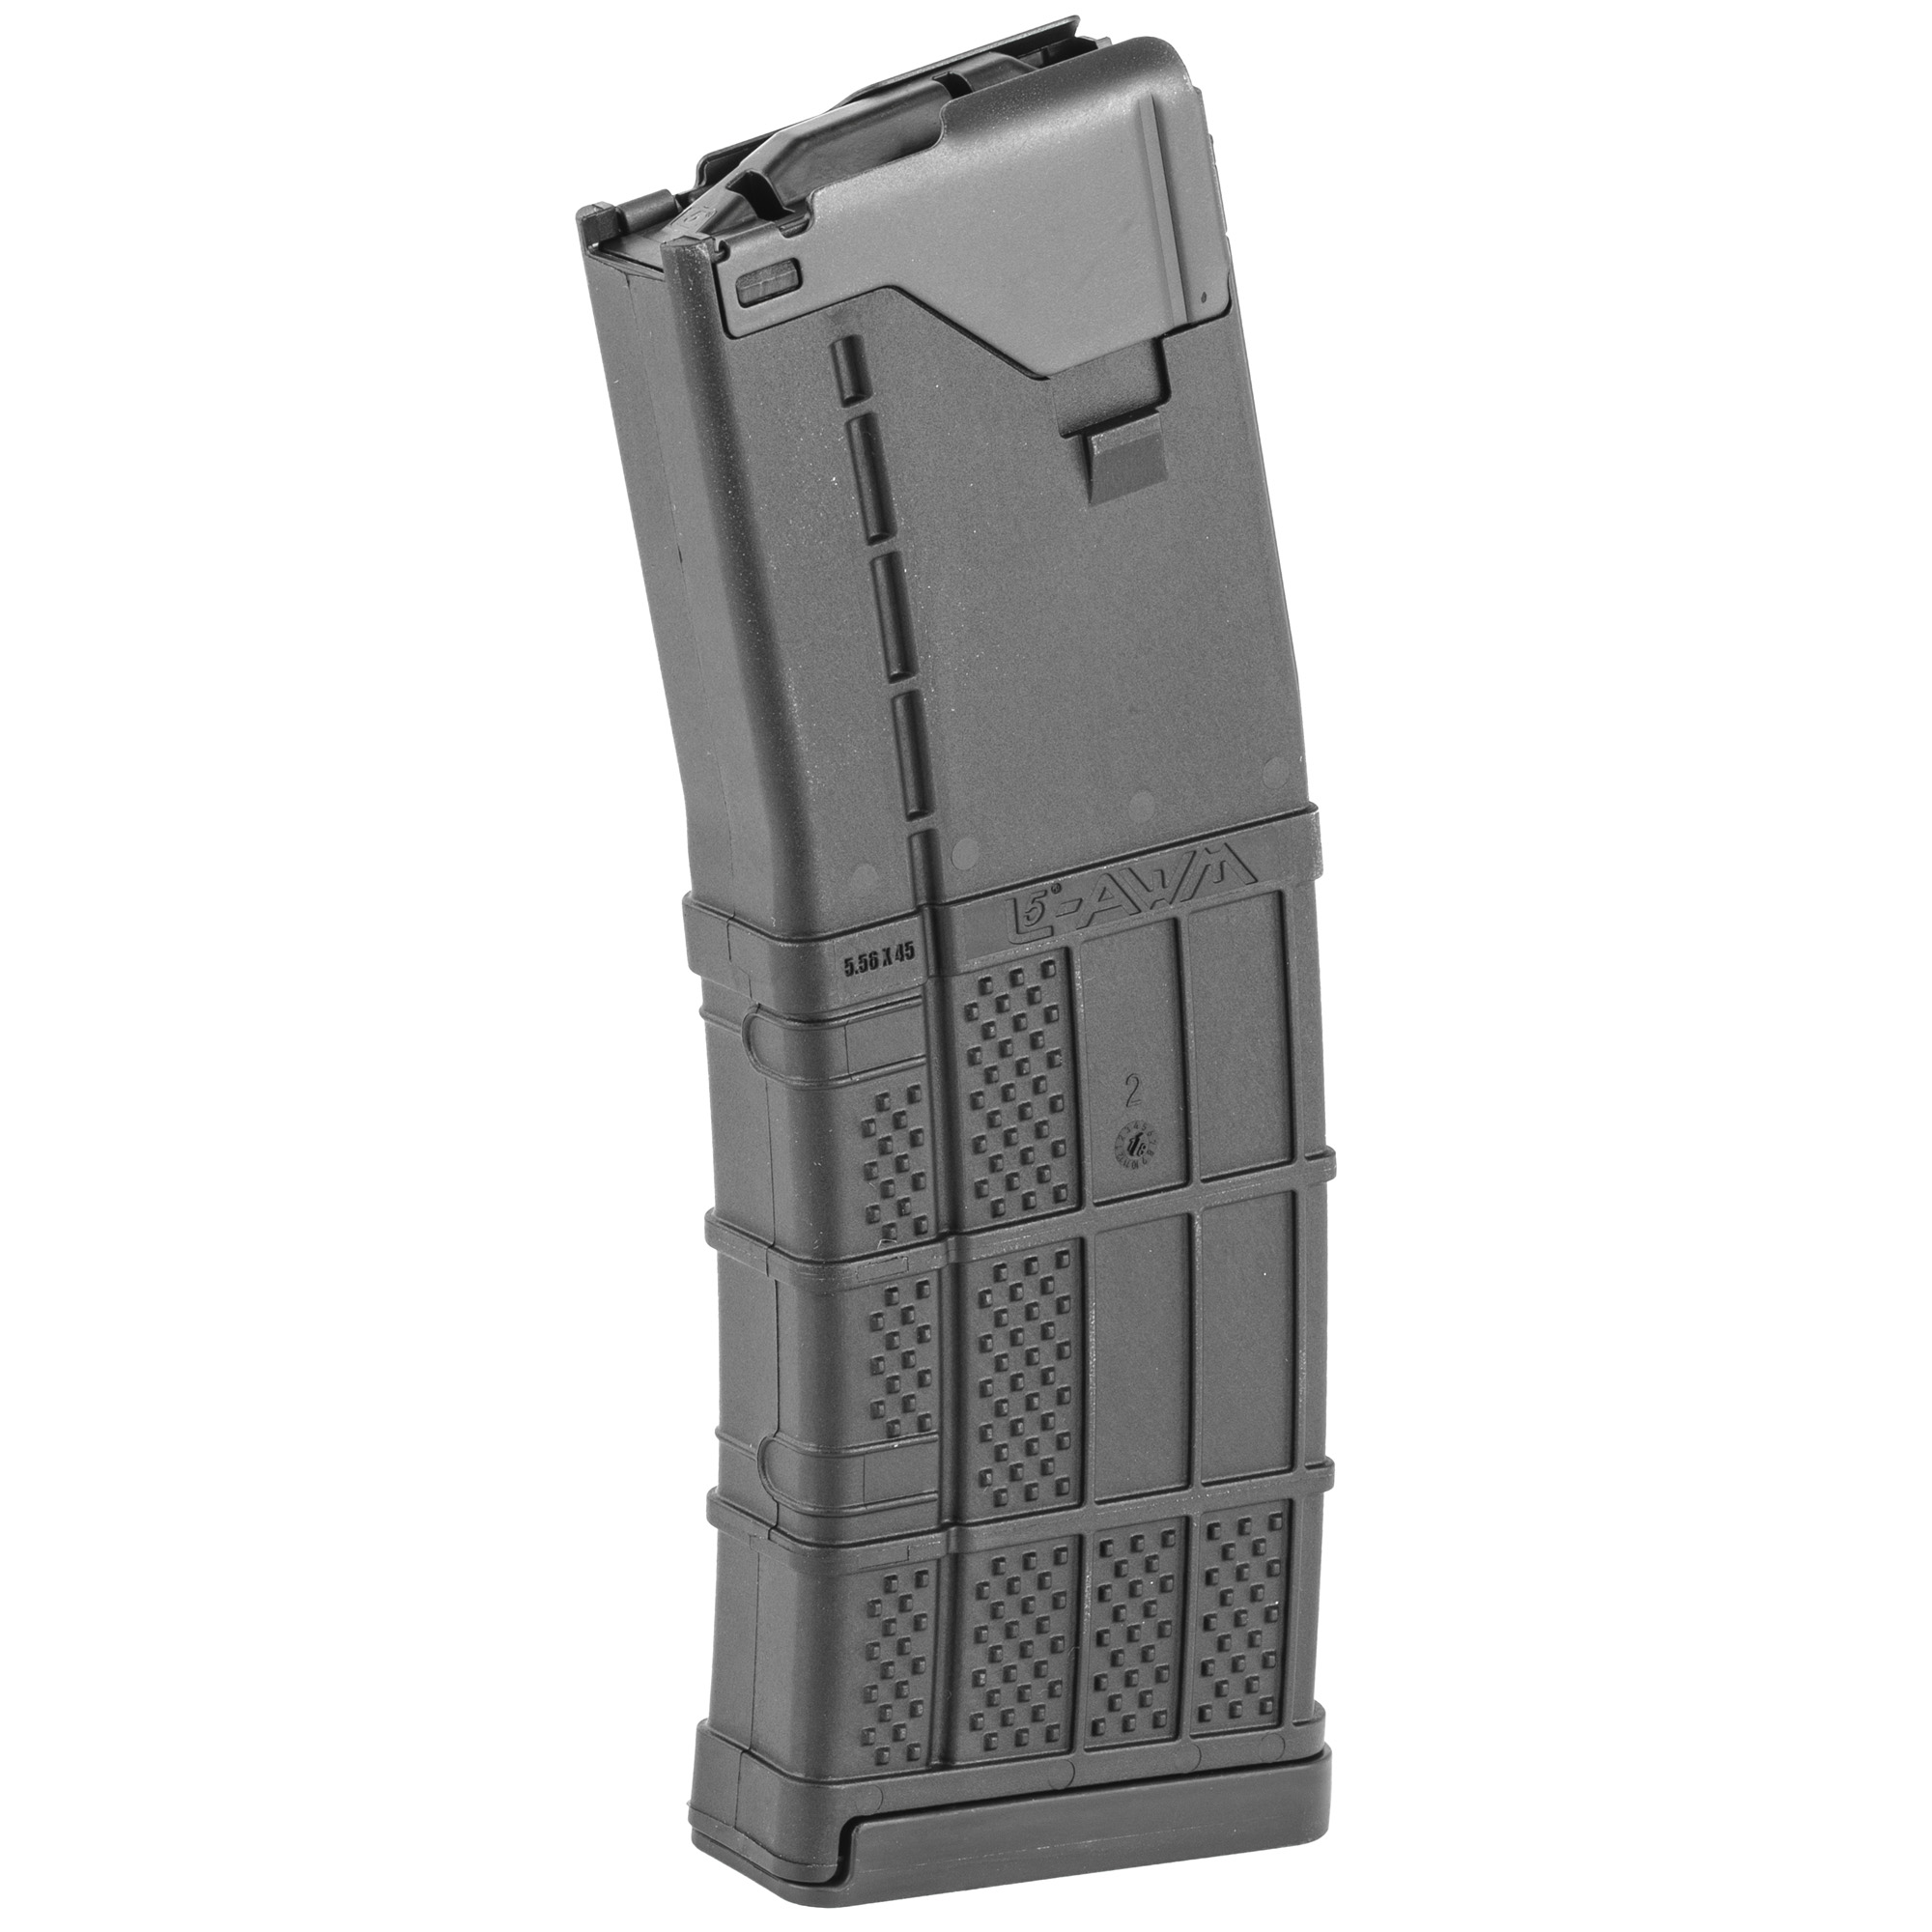 """Lancer set out to engineer a better magazine; one with the reliability of steel"""" durability of polymer and weight of aluminum - the L5AWM. The magazine design includes a one-piece"""" wrap-around steel feed lip assembly and an aggressive surface texture to create the ultimate hybrid magazine tough enough for military"""" LE and commercial use. The internal geometry of the Advanced Warfighter Magazine is a constant curvature utilizing a non-tilting follower for reliable feeding. The body and component materials are corrosion and chemical resistant"""" passing military chemical testing."""